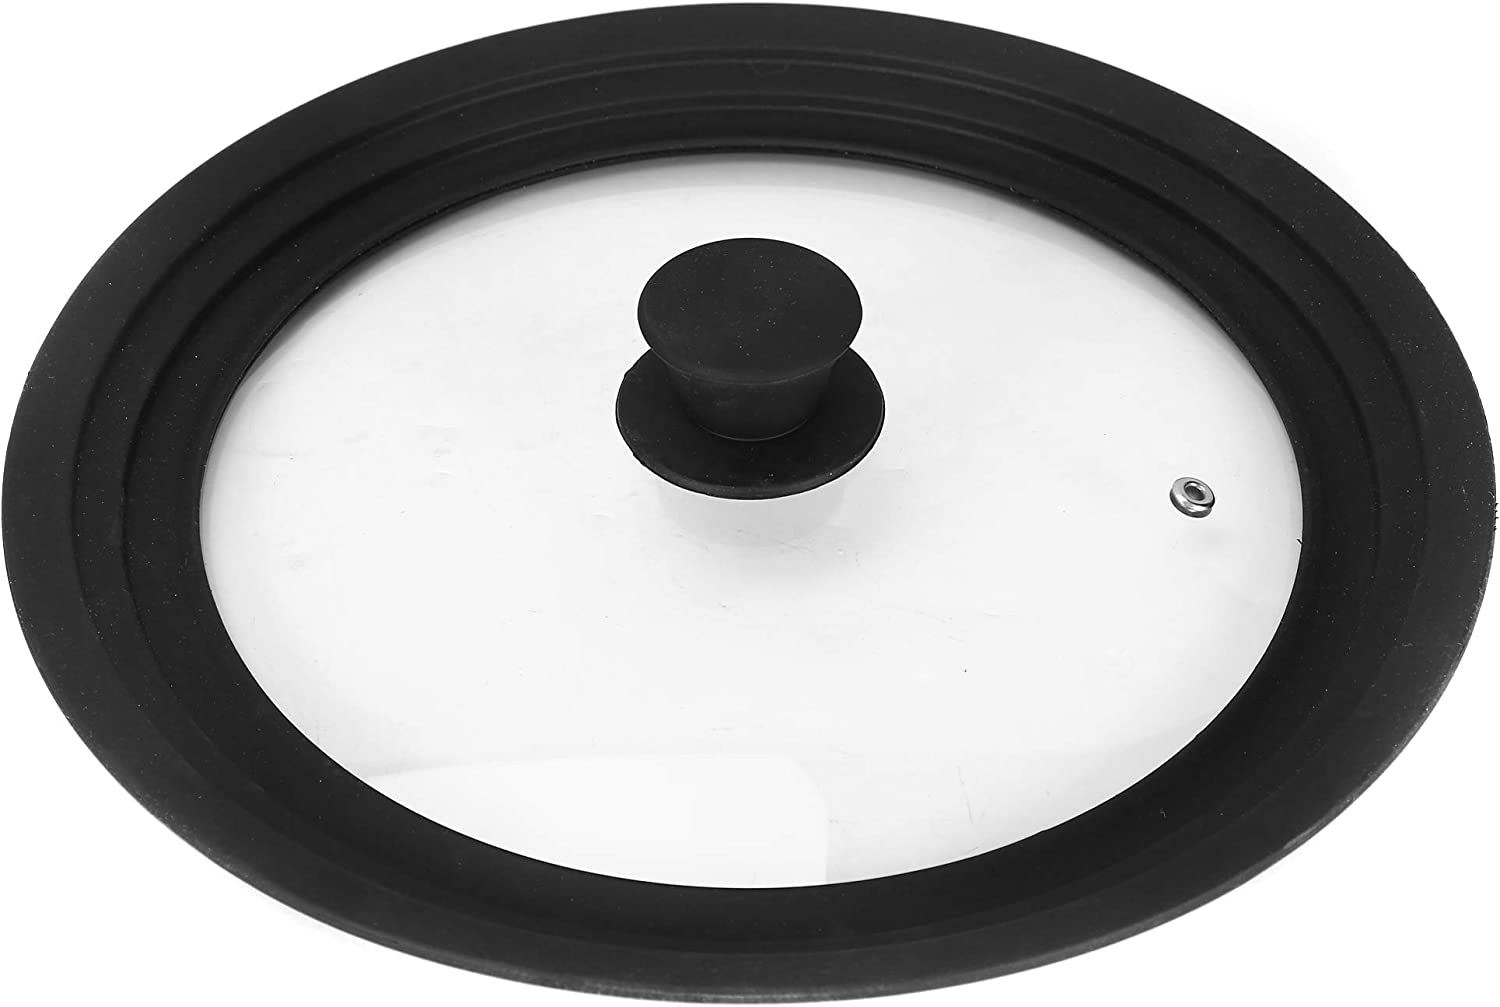 Universal Lid for Pans,Pots and Skillets Tempered Glass with Food grade silicone Rim Fits 10 11 12 inch Cookware (26/28/30cm) Large Black